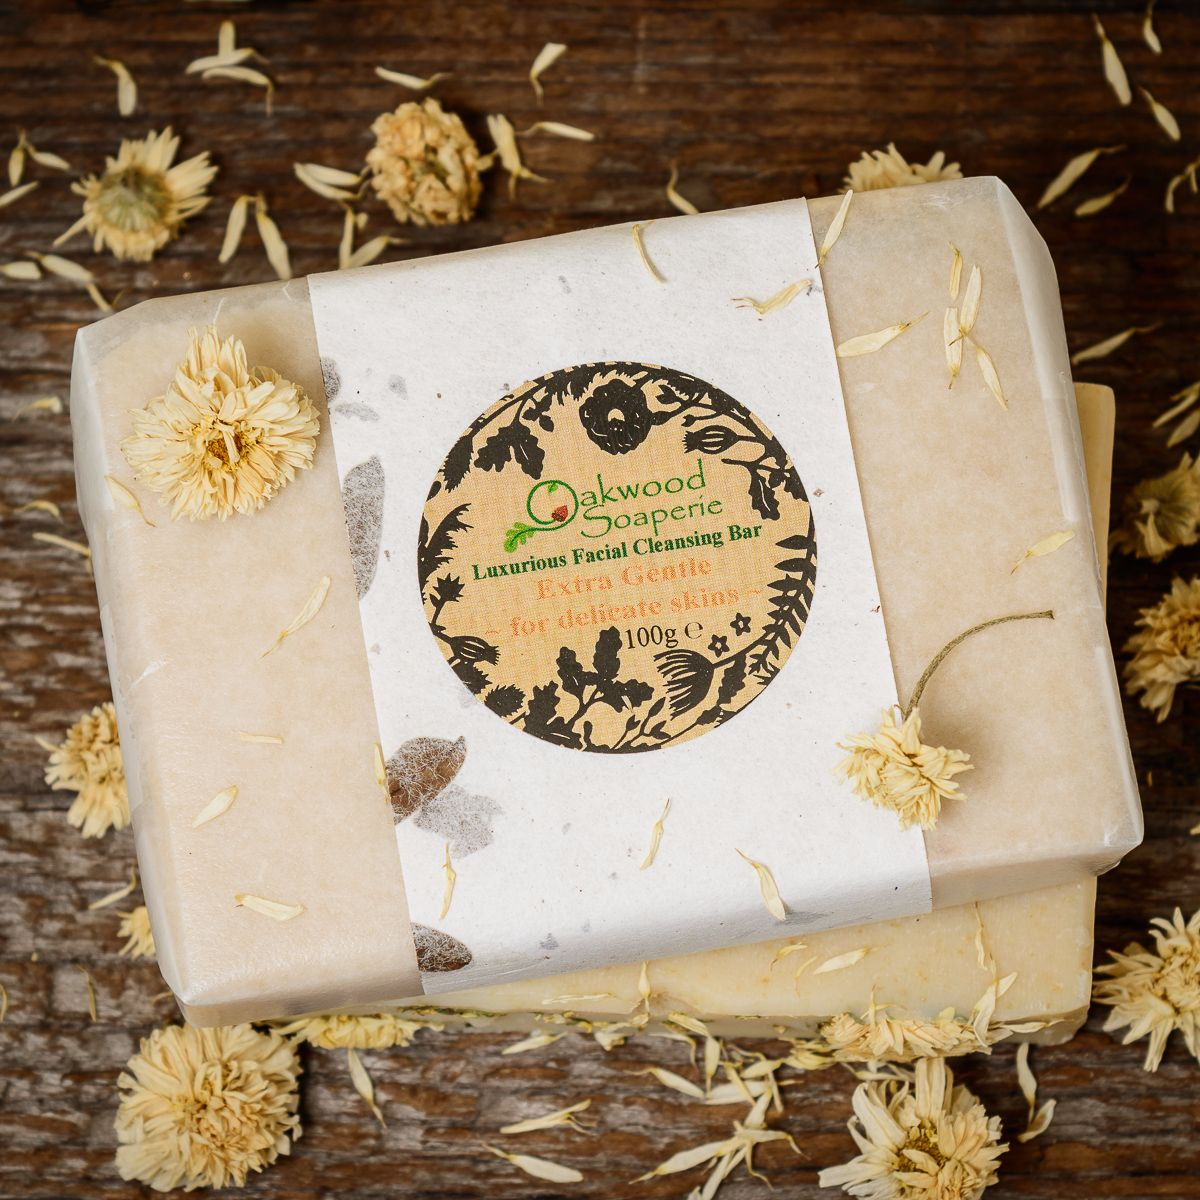 Goat's milk & Chamomile facial bar